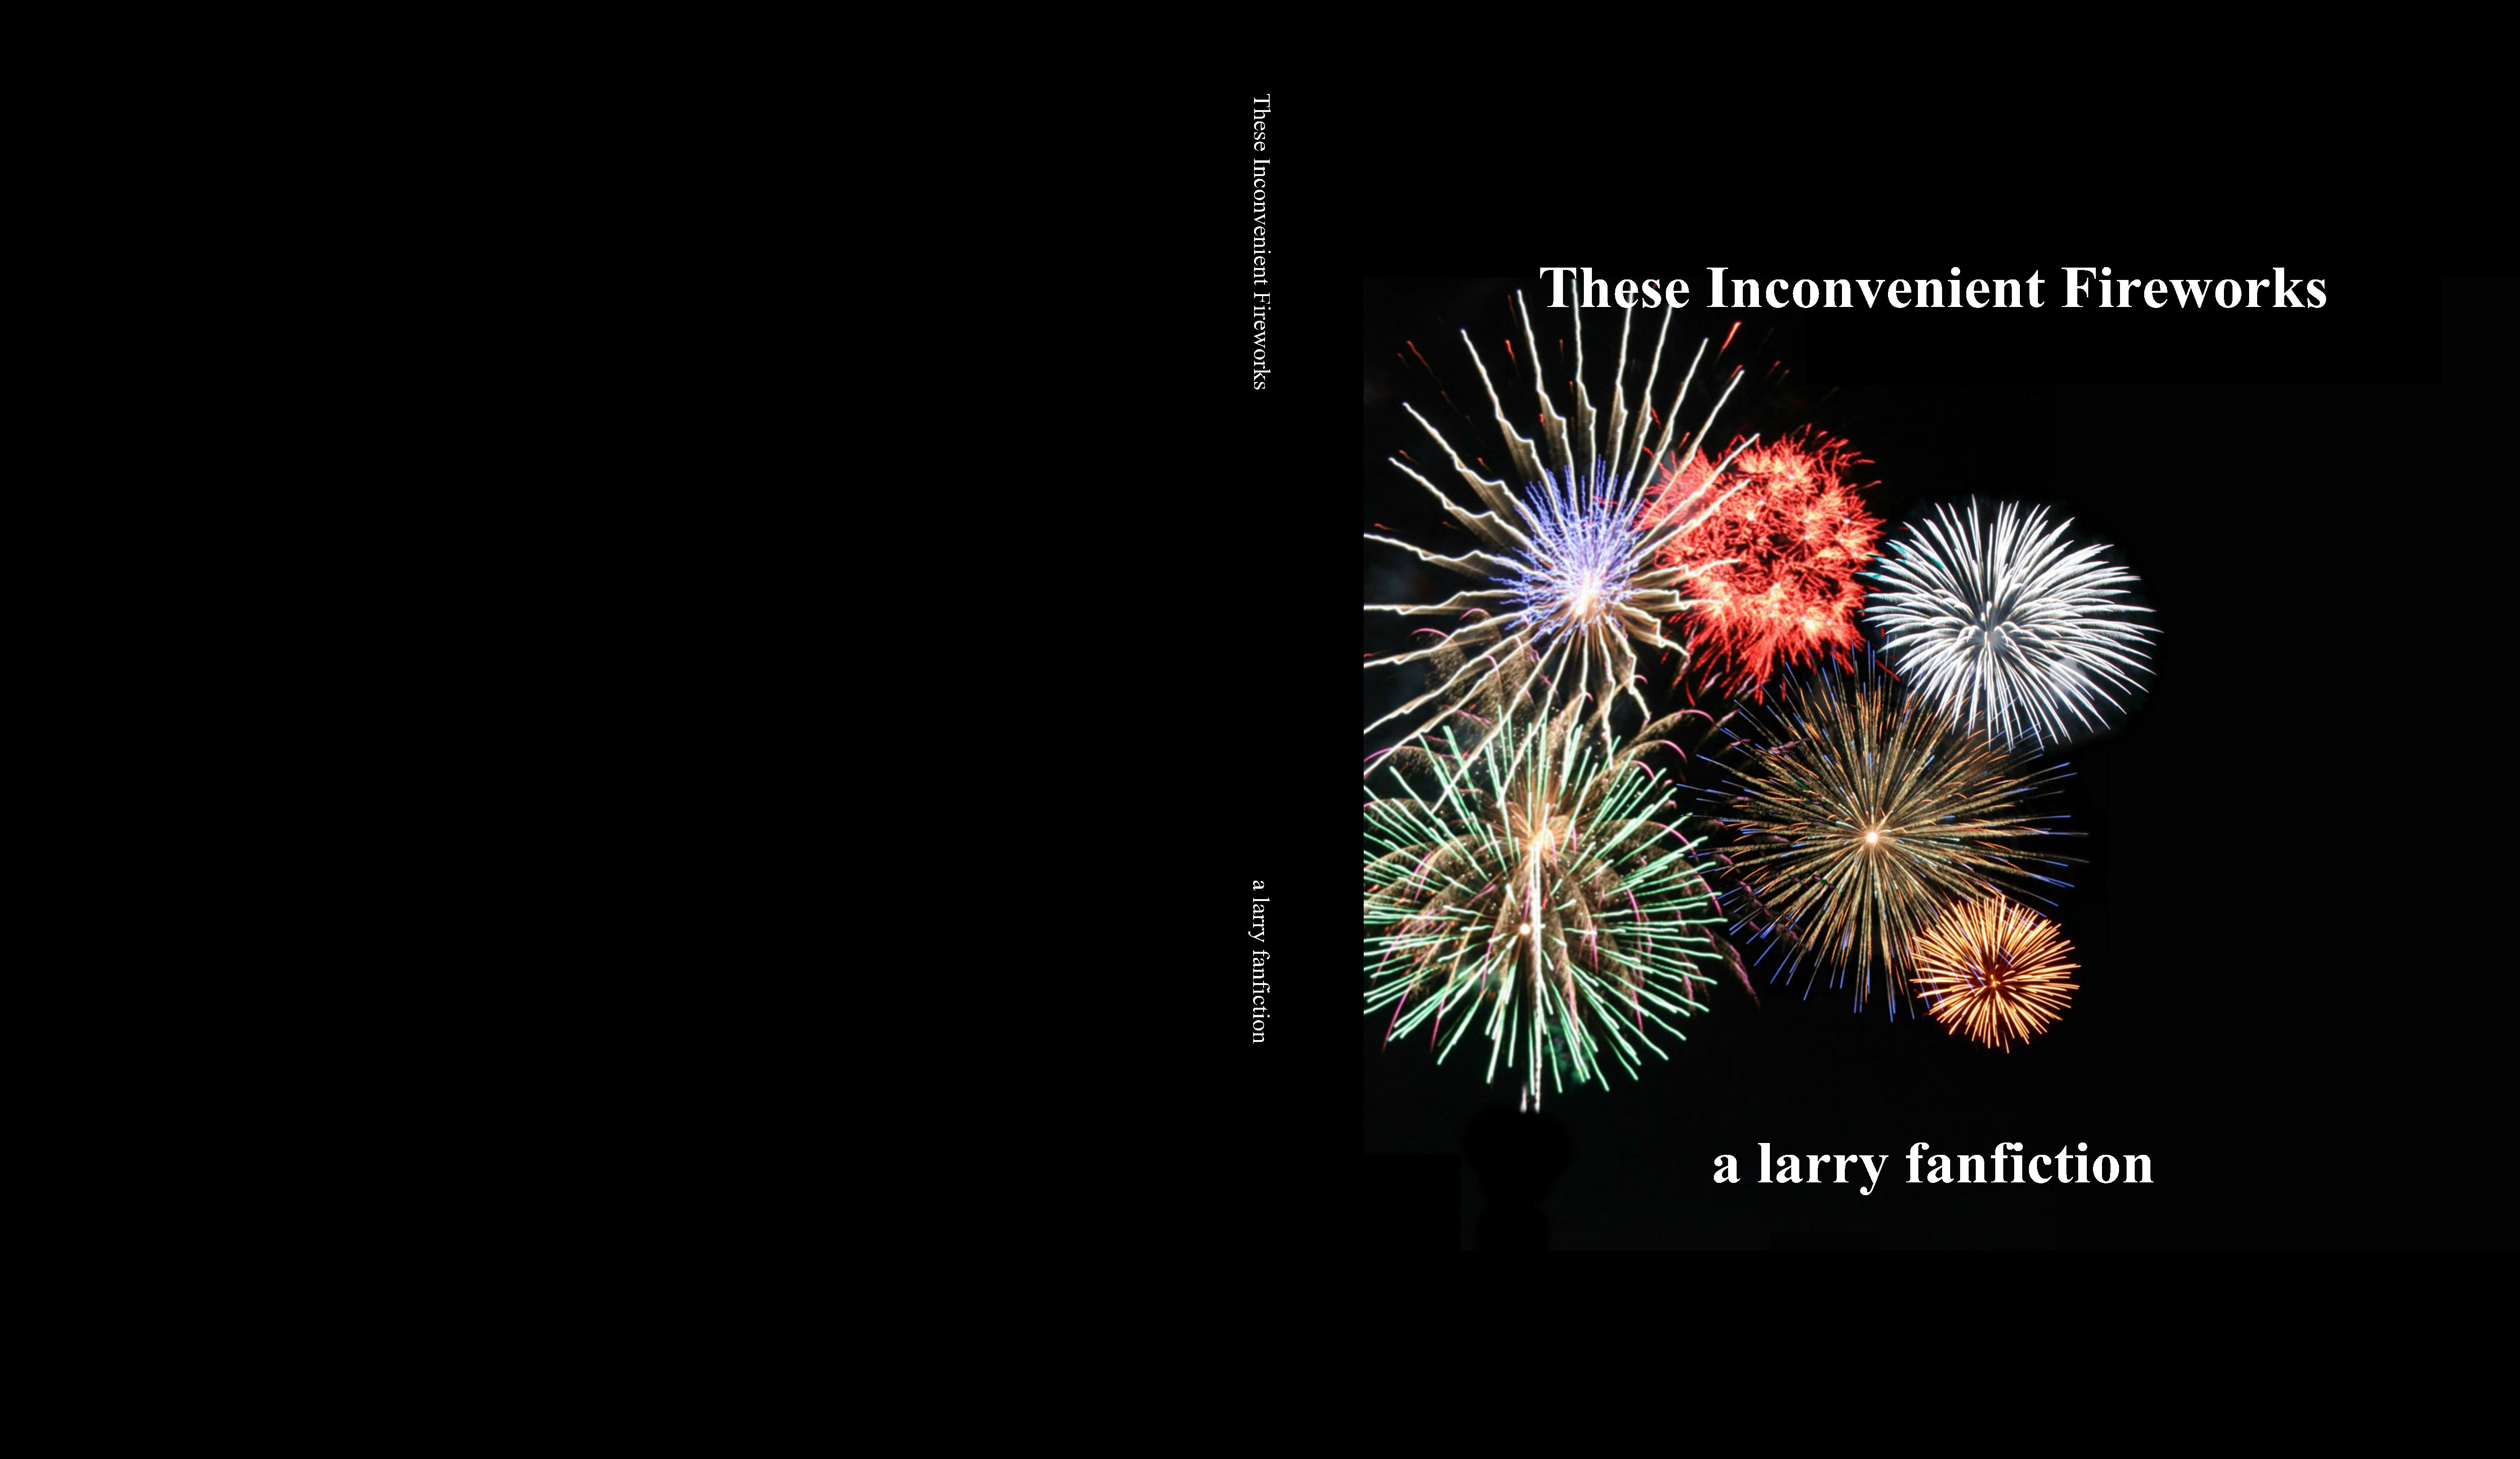 These Inconvenient Fireworks cover image